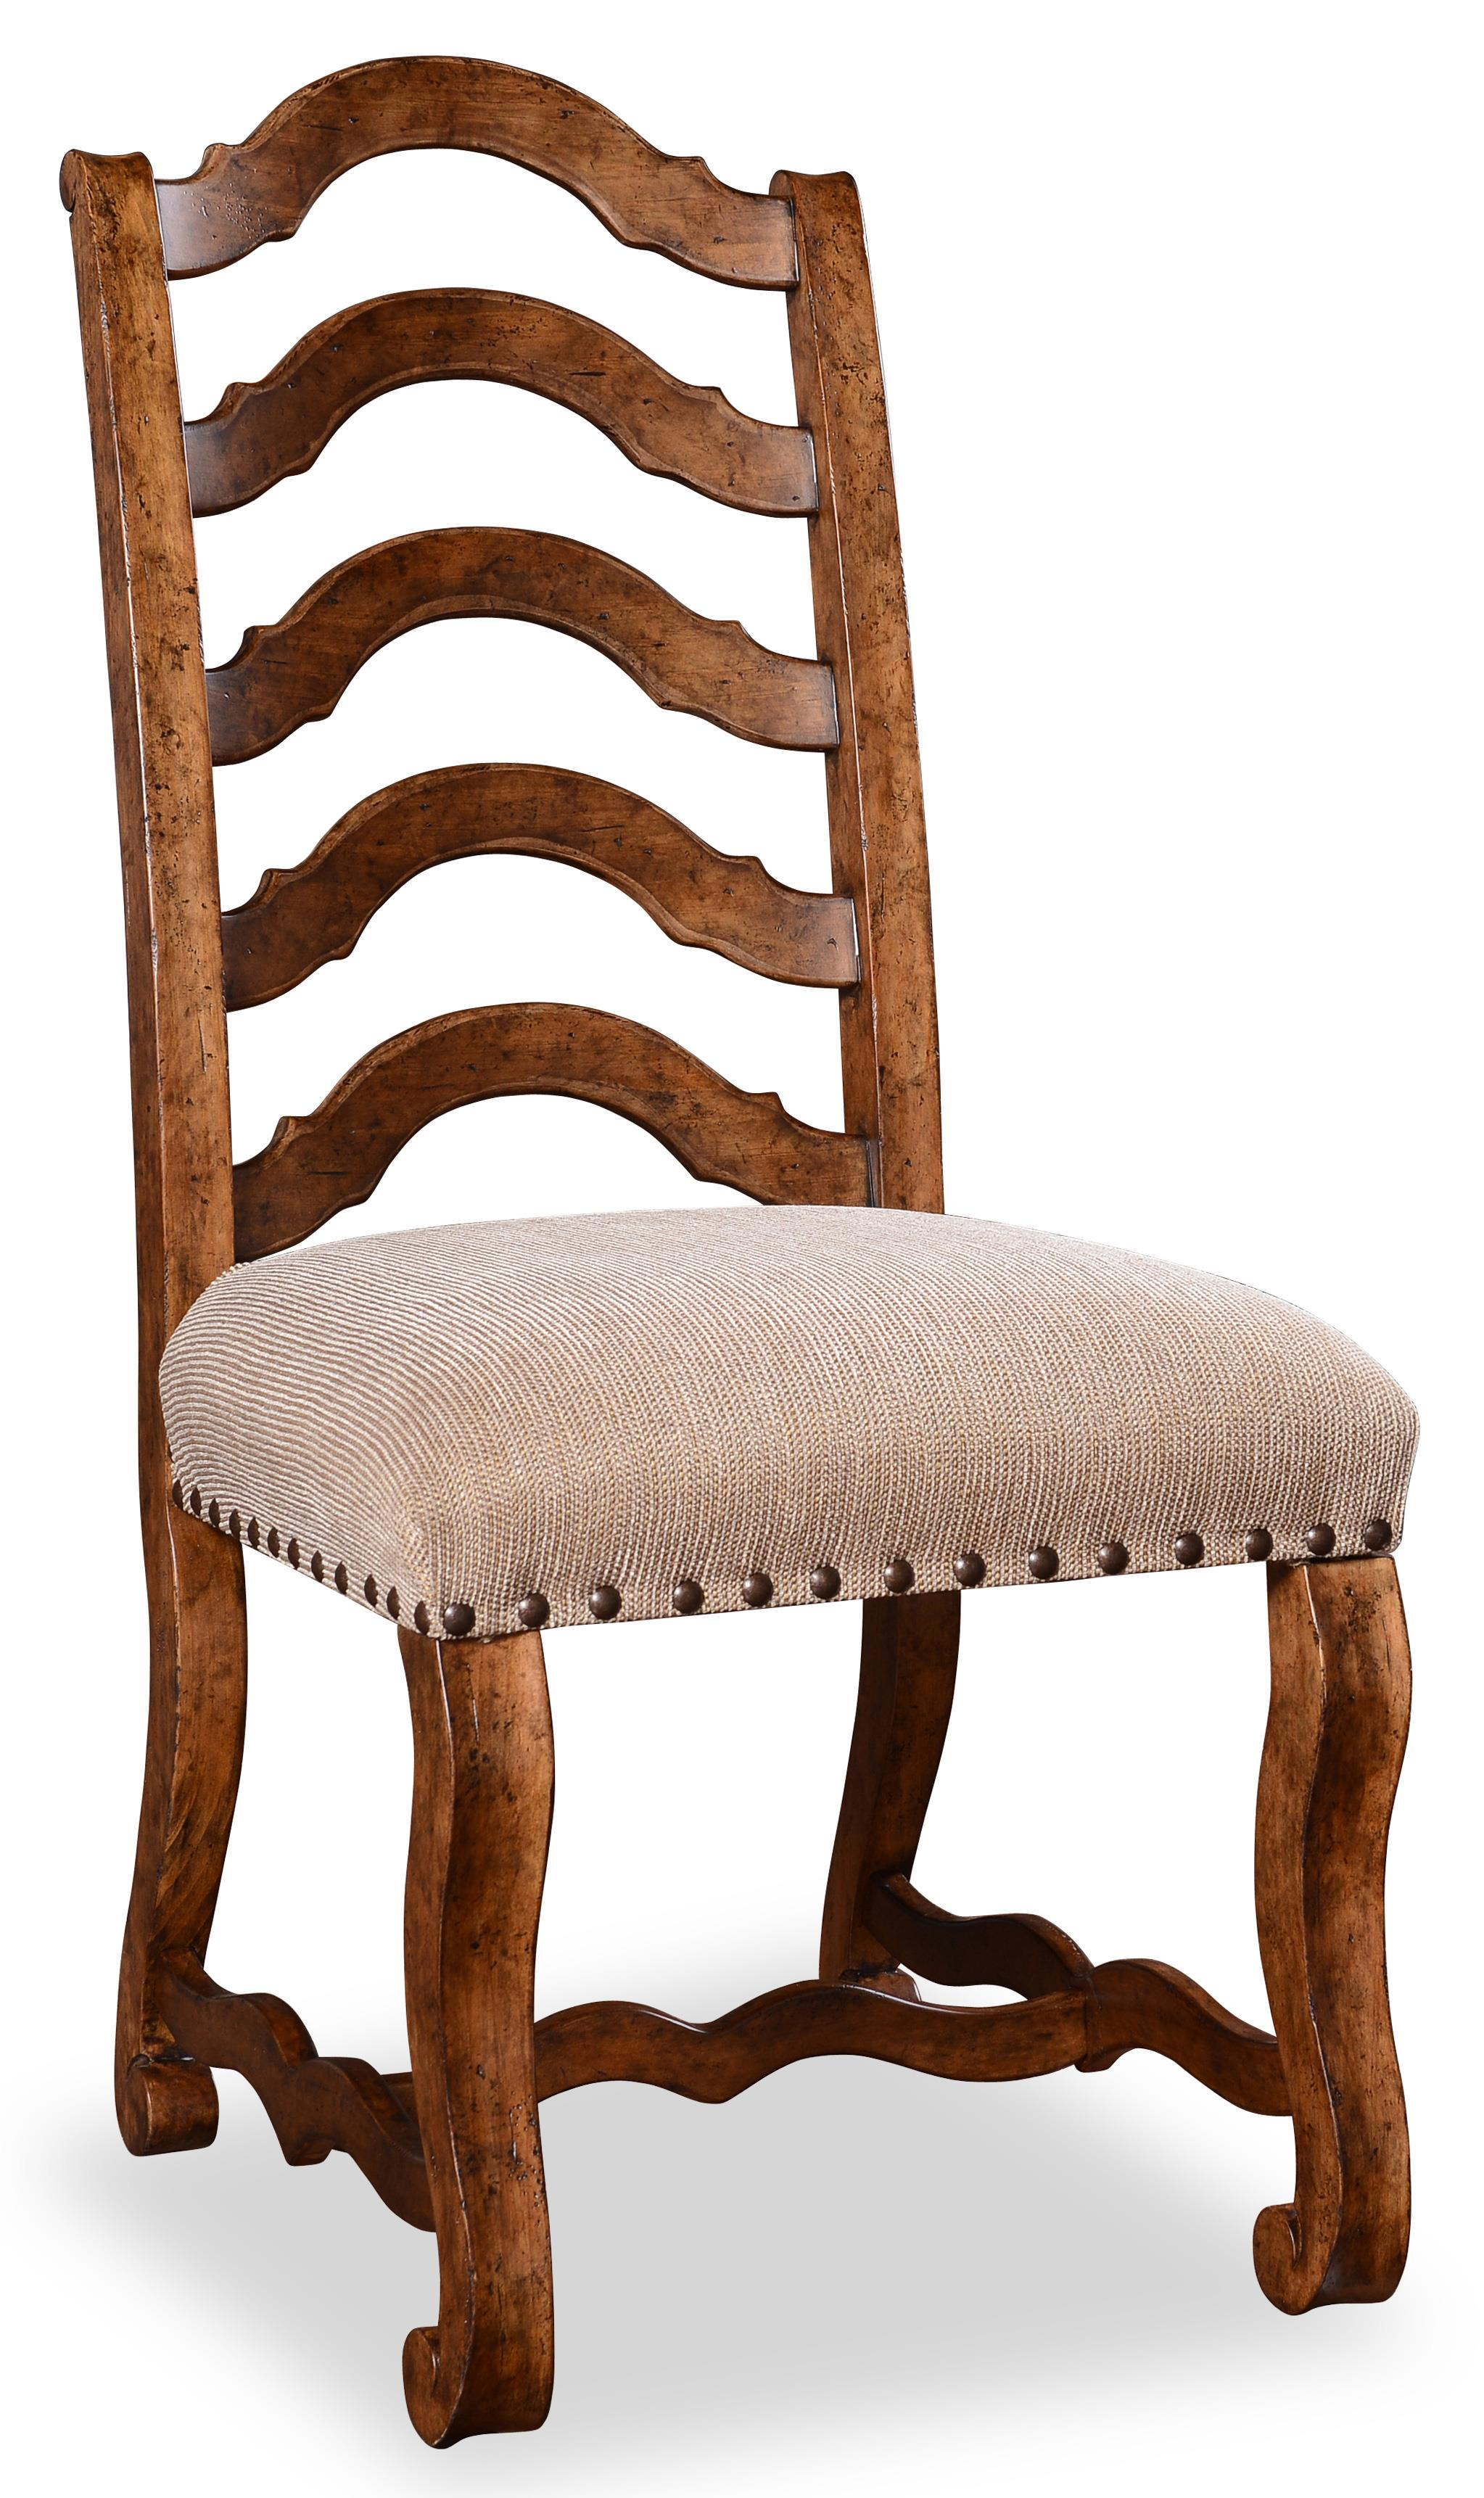 Belfort Signature Belle Haven Harvest Side Chair - Item Number: 217202-2610